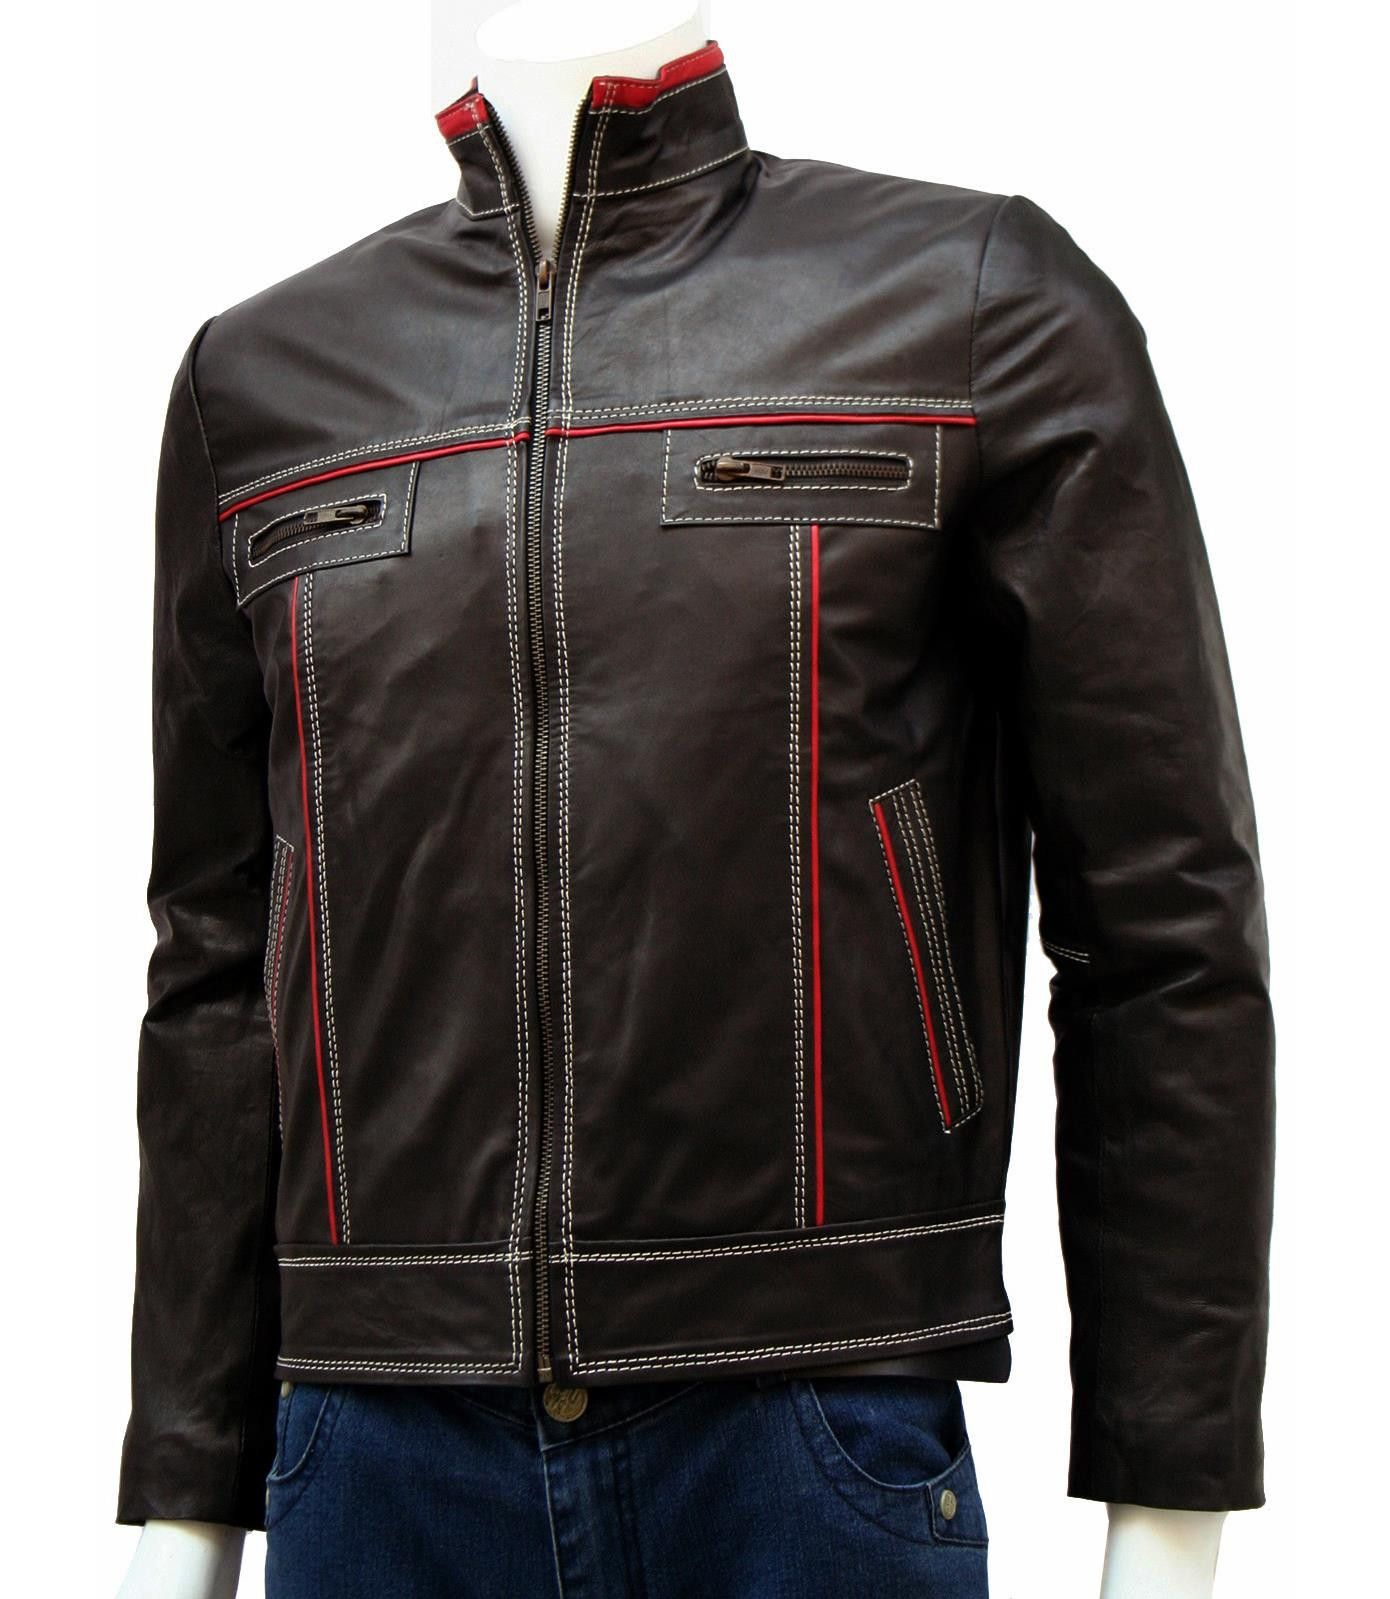 Red & Brown Classic Leather Jacket